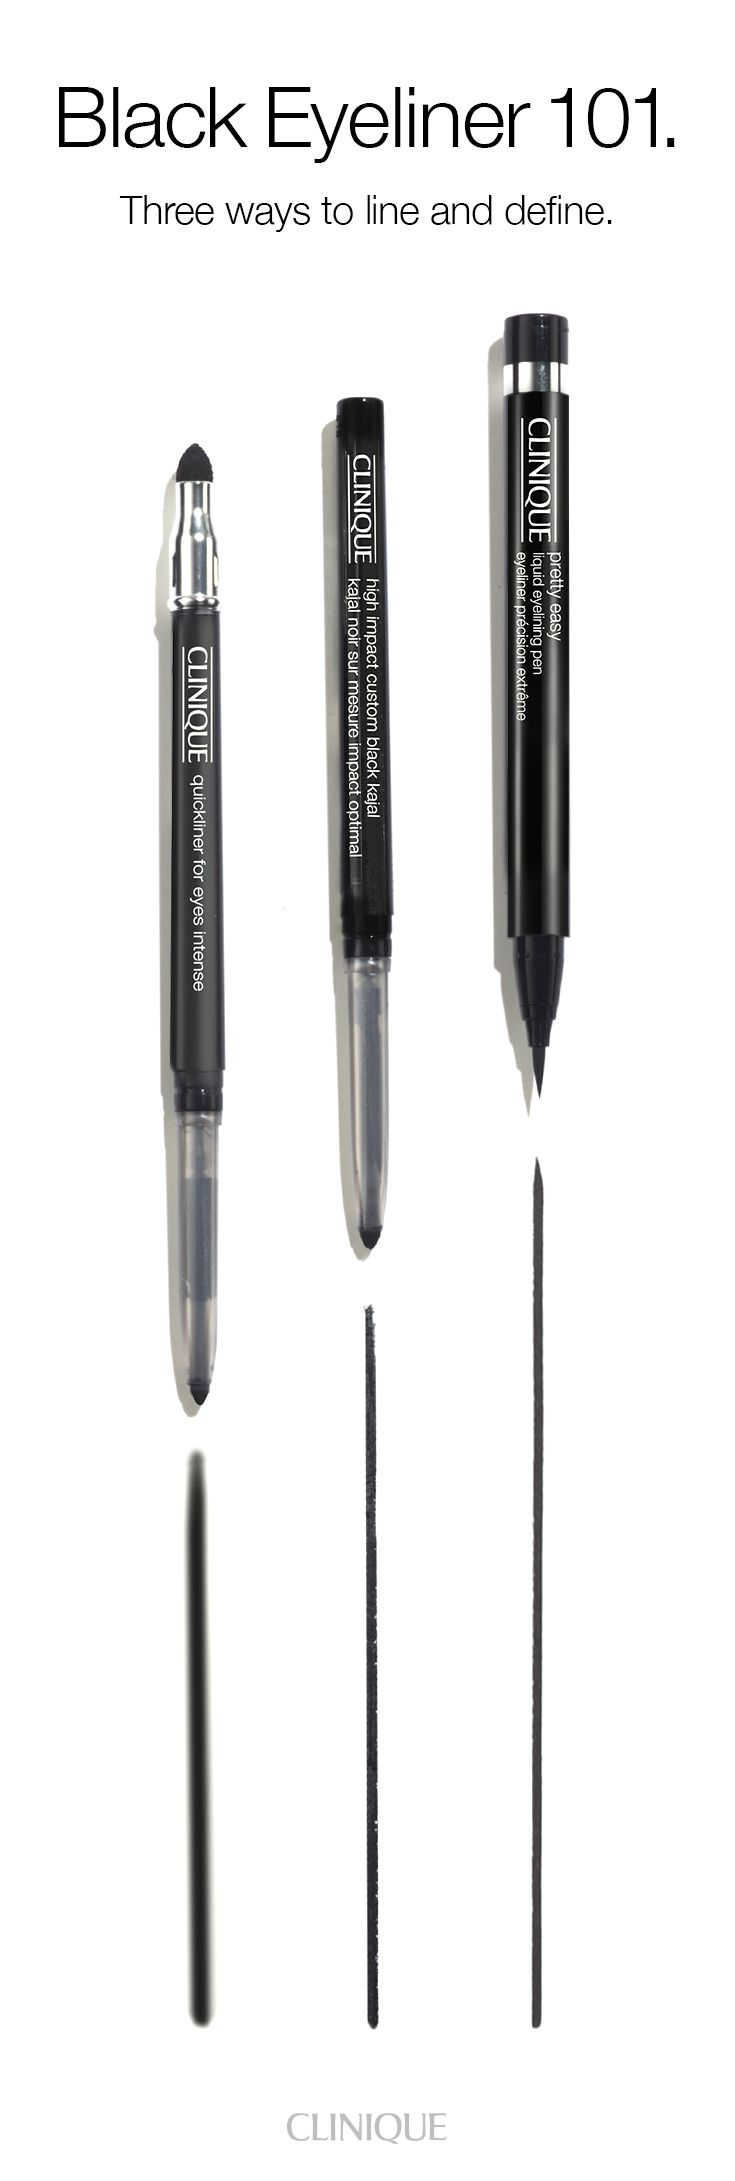 Black eyeliner guide: Three ways to line and define. Quickliner for Eyes Intense for a silky formula that glides on and never needs sharpening. New High Impact Custom Black Kajal for rich, dark colour with 12 hours of staying power. Pretty Easy Liquid Eyelining Pen for a mistake-proof pen that creates a clean line in one steady sweep.